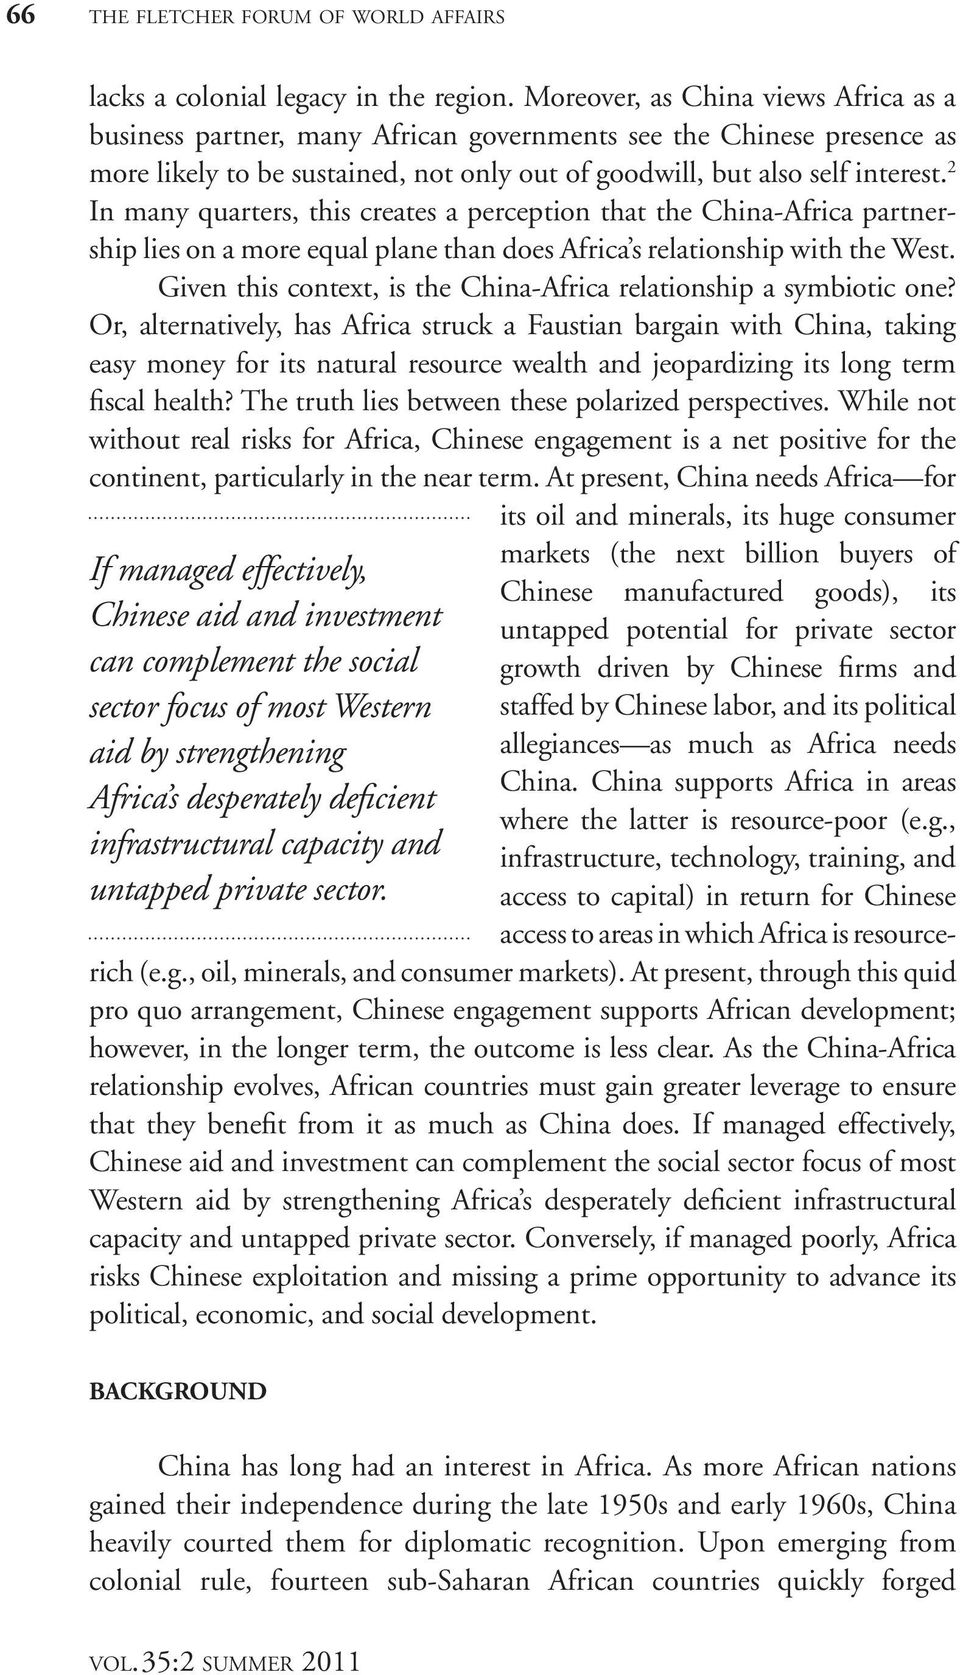 2 In many quarters, this creates a perception that the China-Africa partnership lies on a more equal plane than does Africa s relationship with the West.